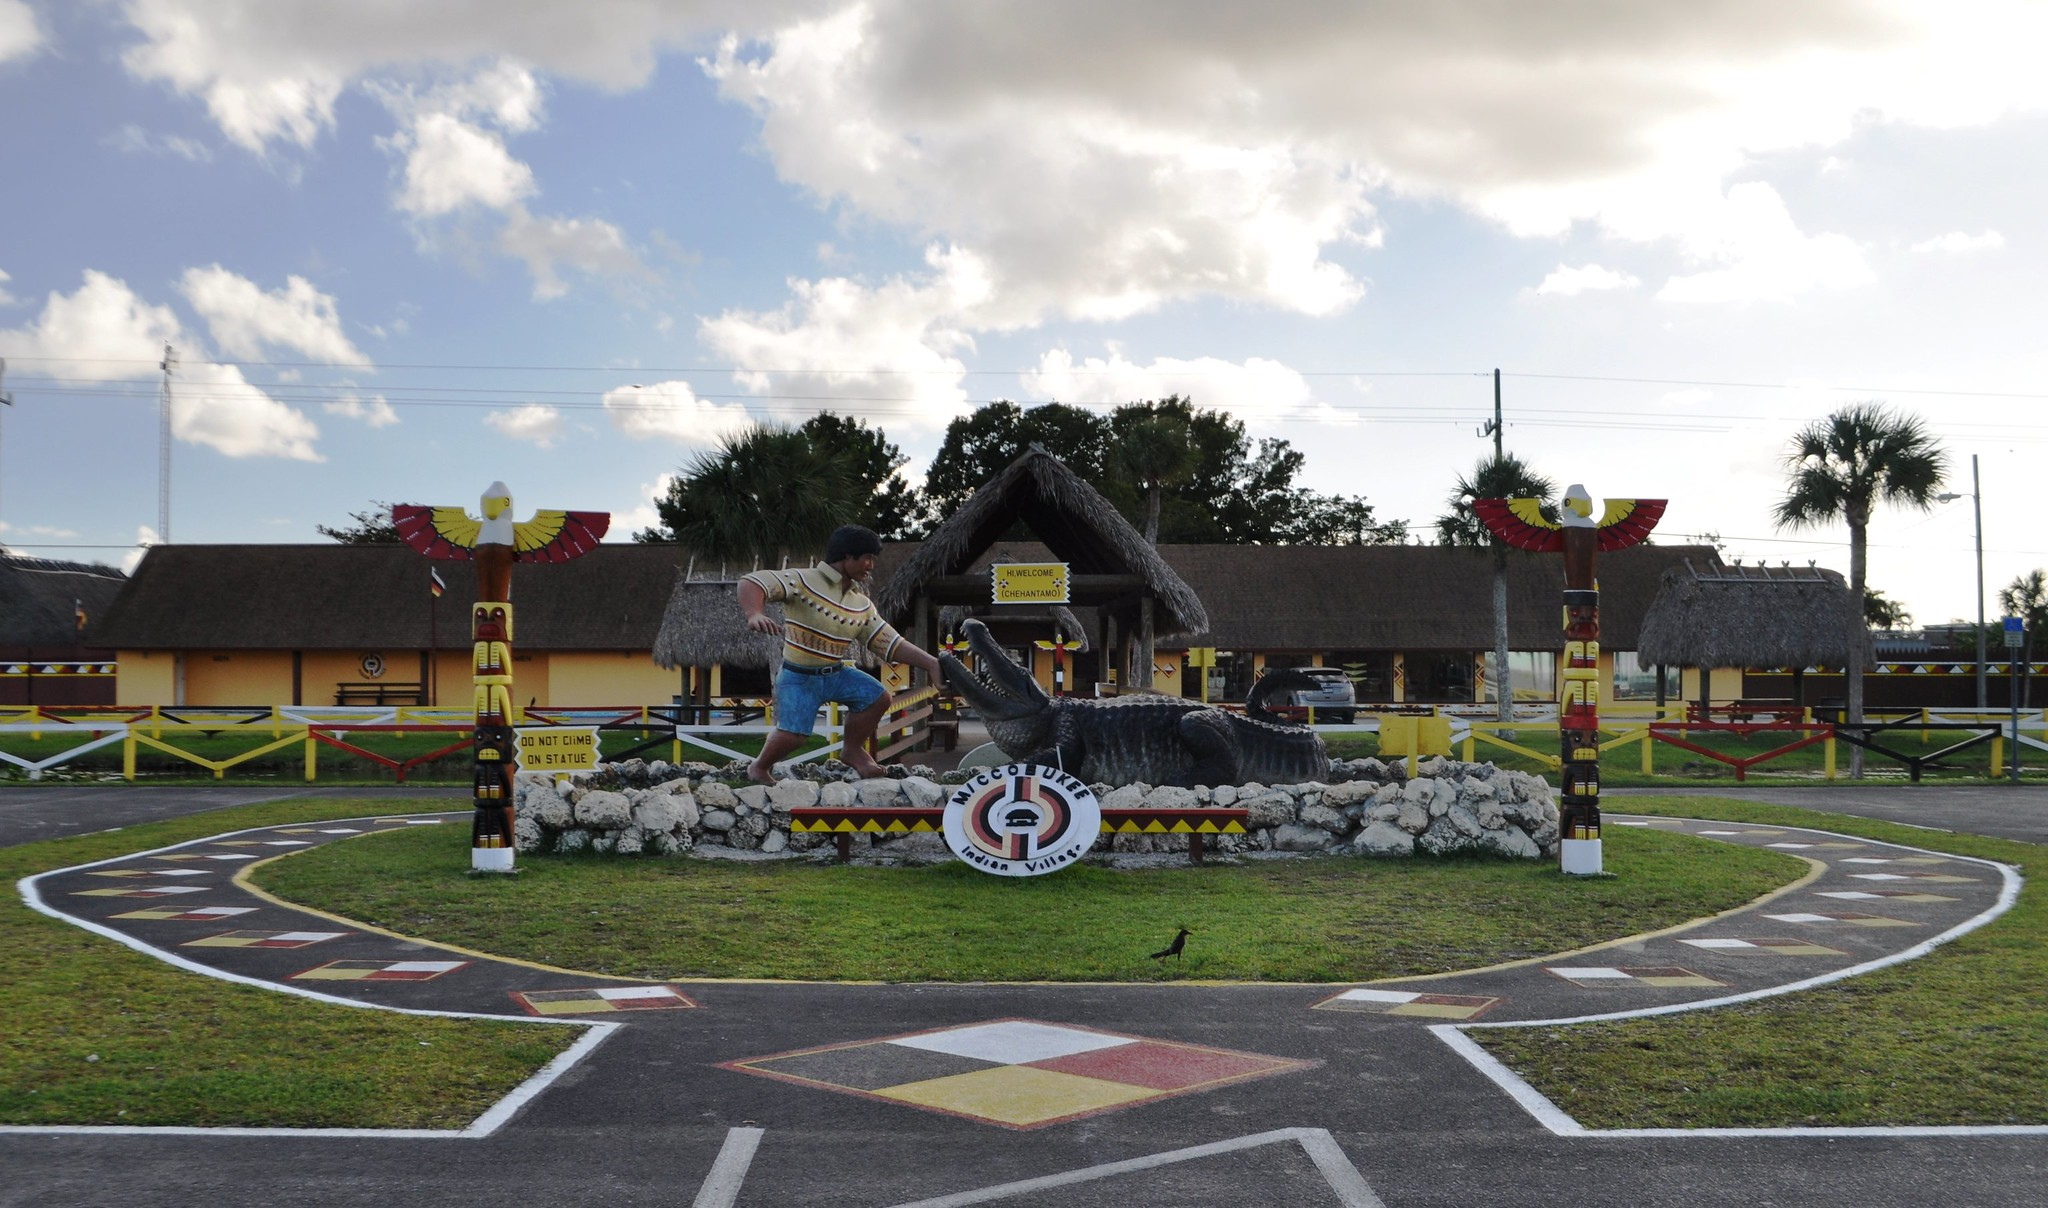 Miccosukee Indian Village in the Florida Everglades, Dec. 7, 2013